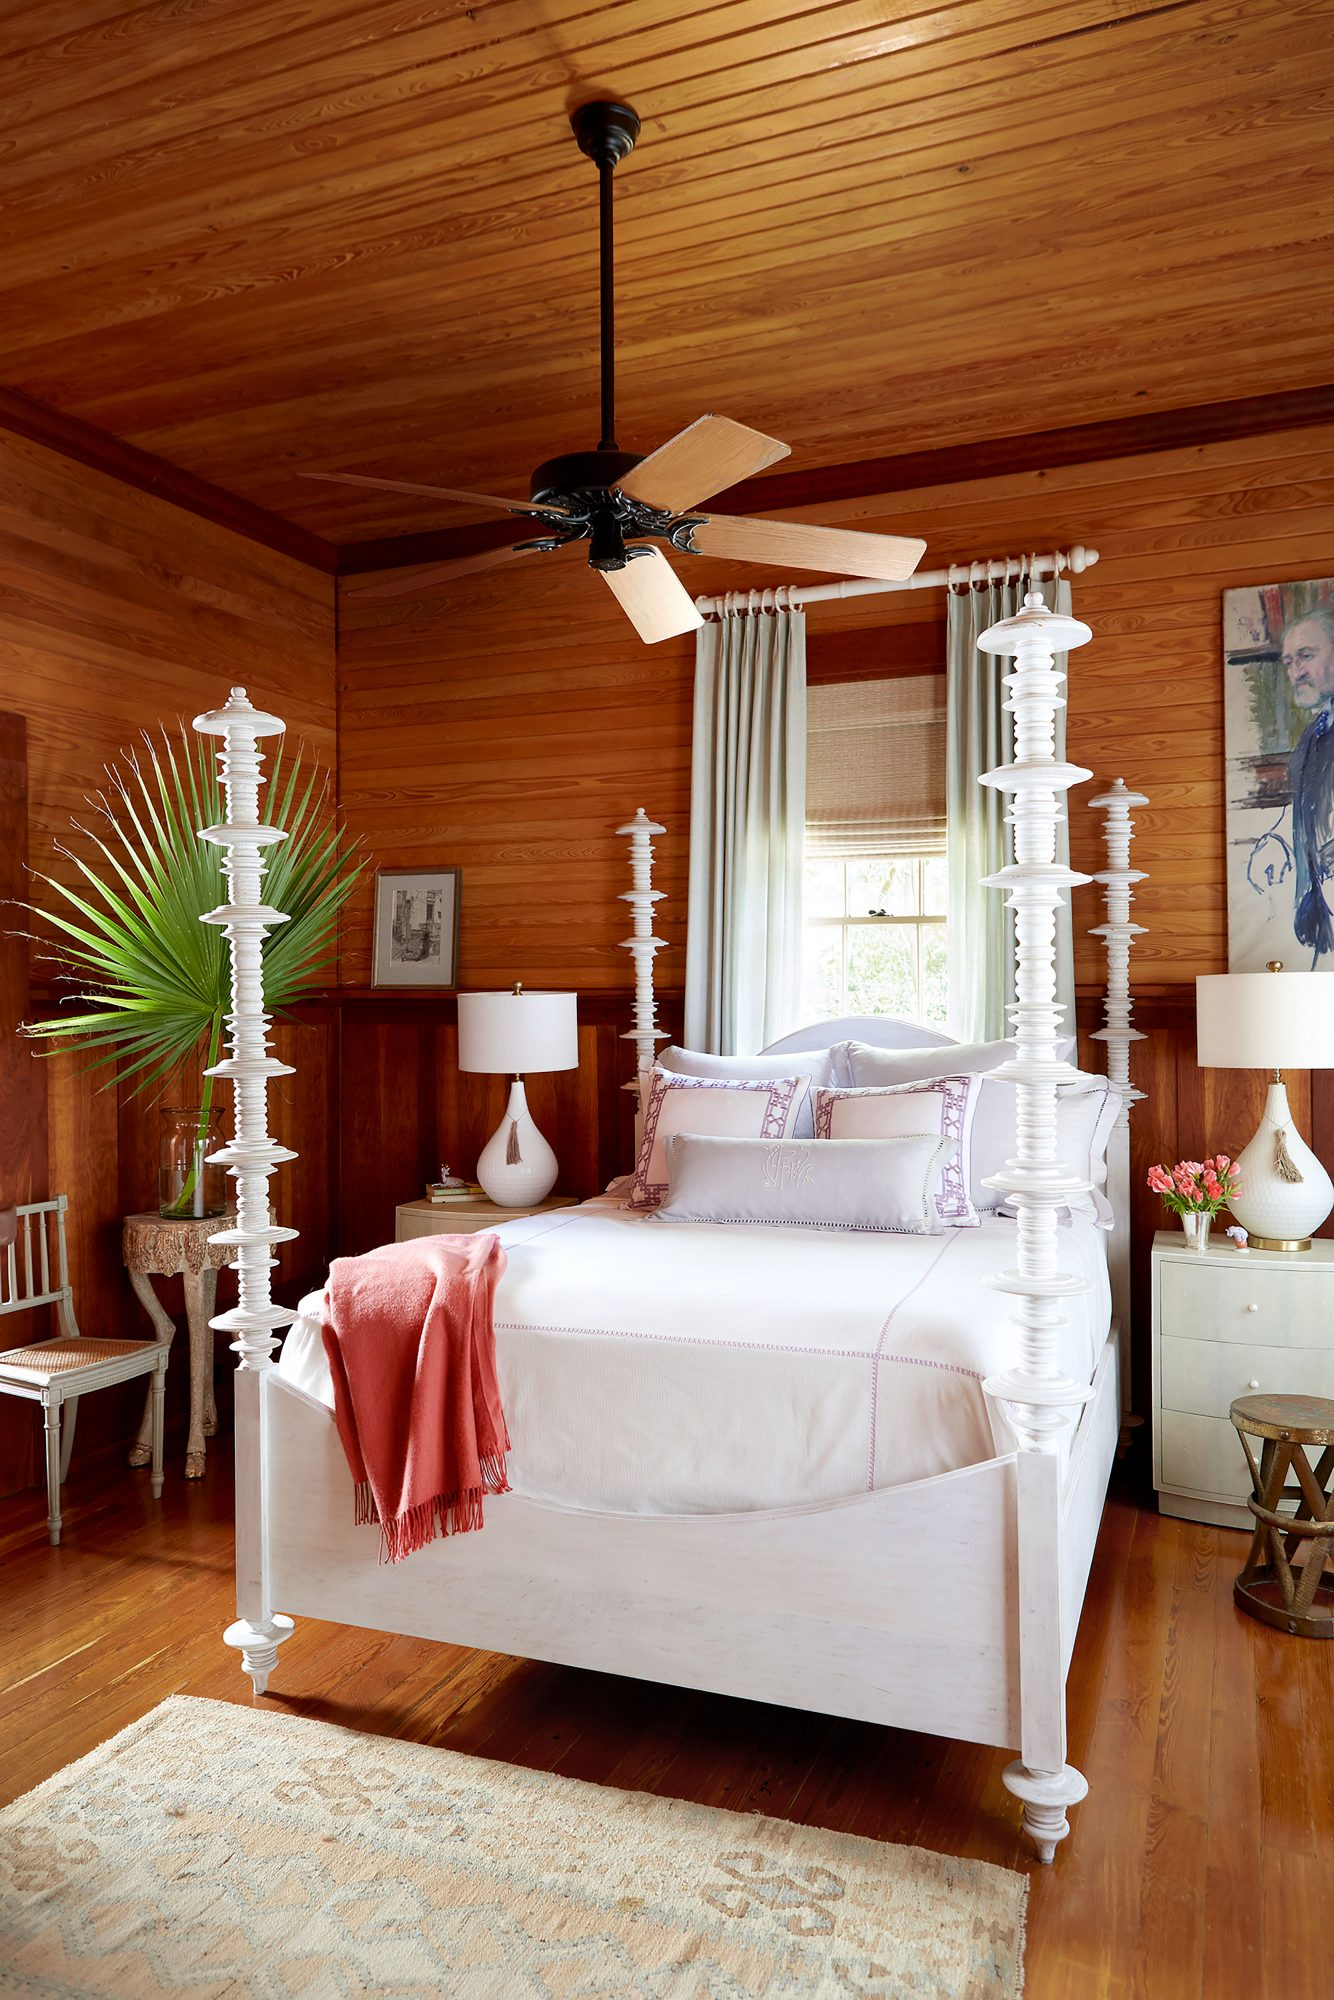 Wood-clad Master Bedroom with White Four-Poster Bed